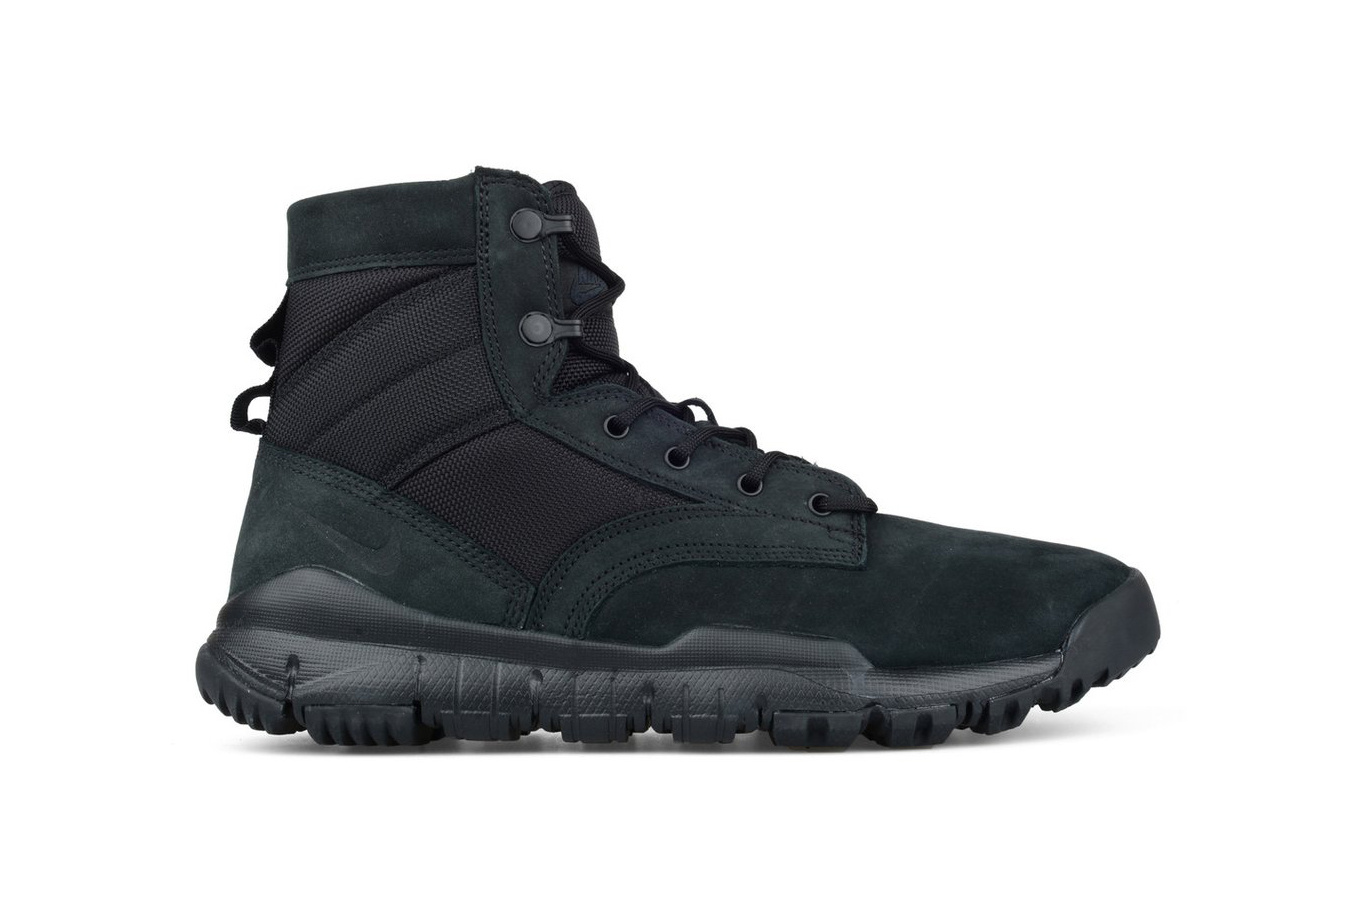 Nike SFB 6 Leather Boot Triple Black - TRENDS periodical